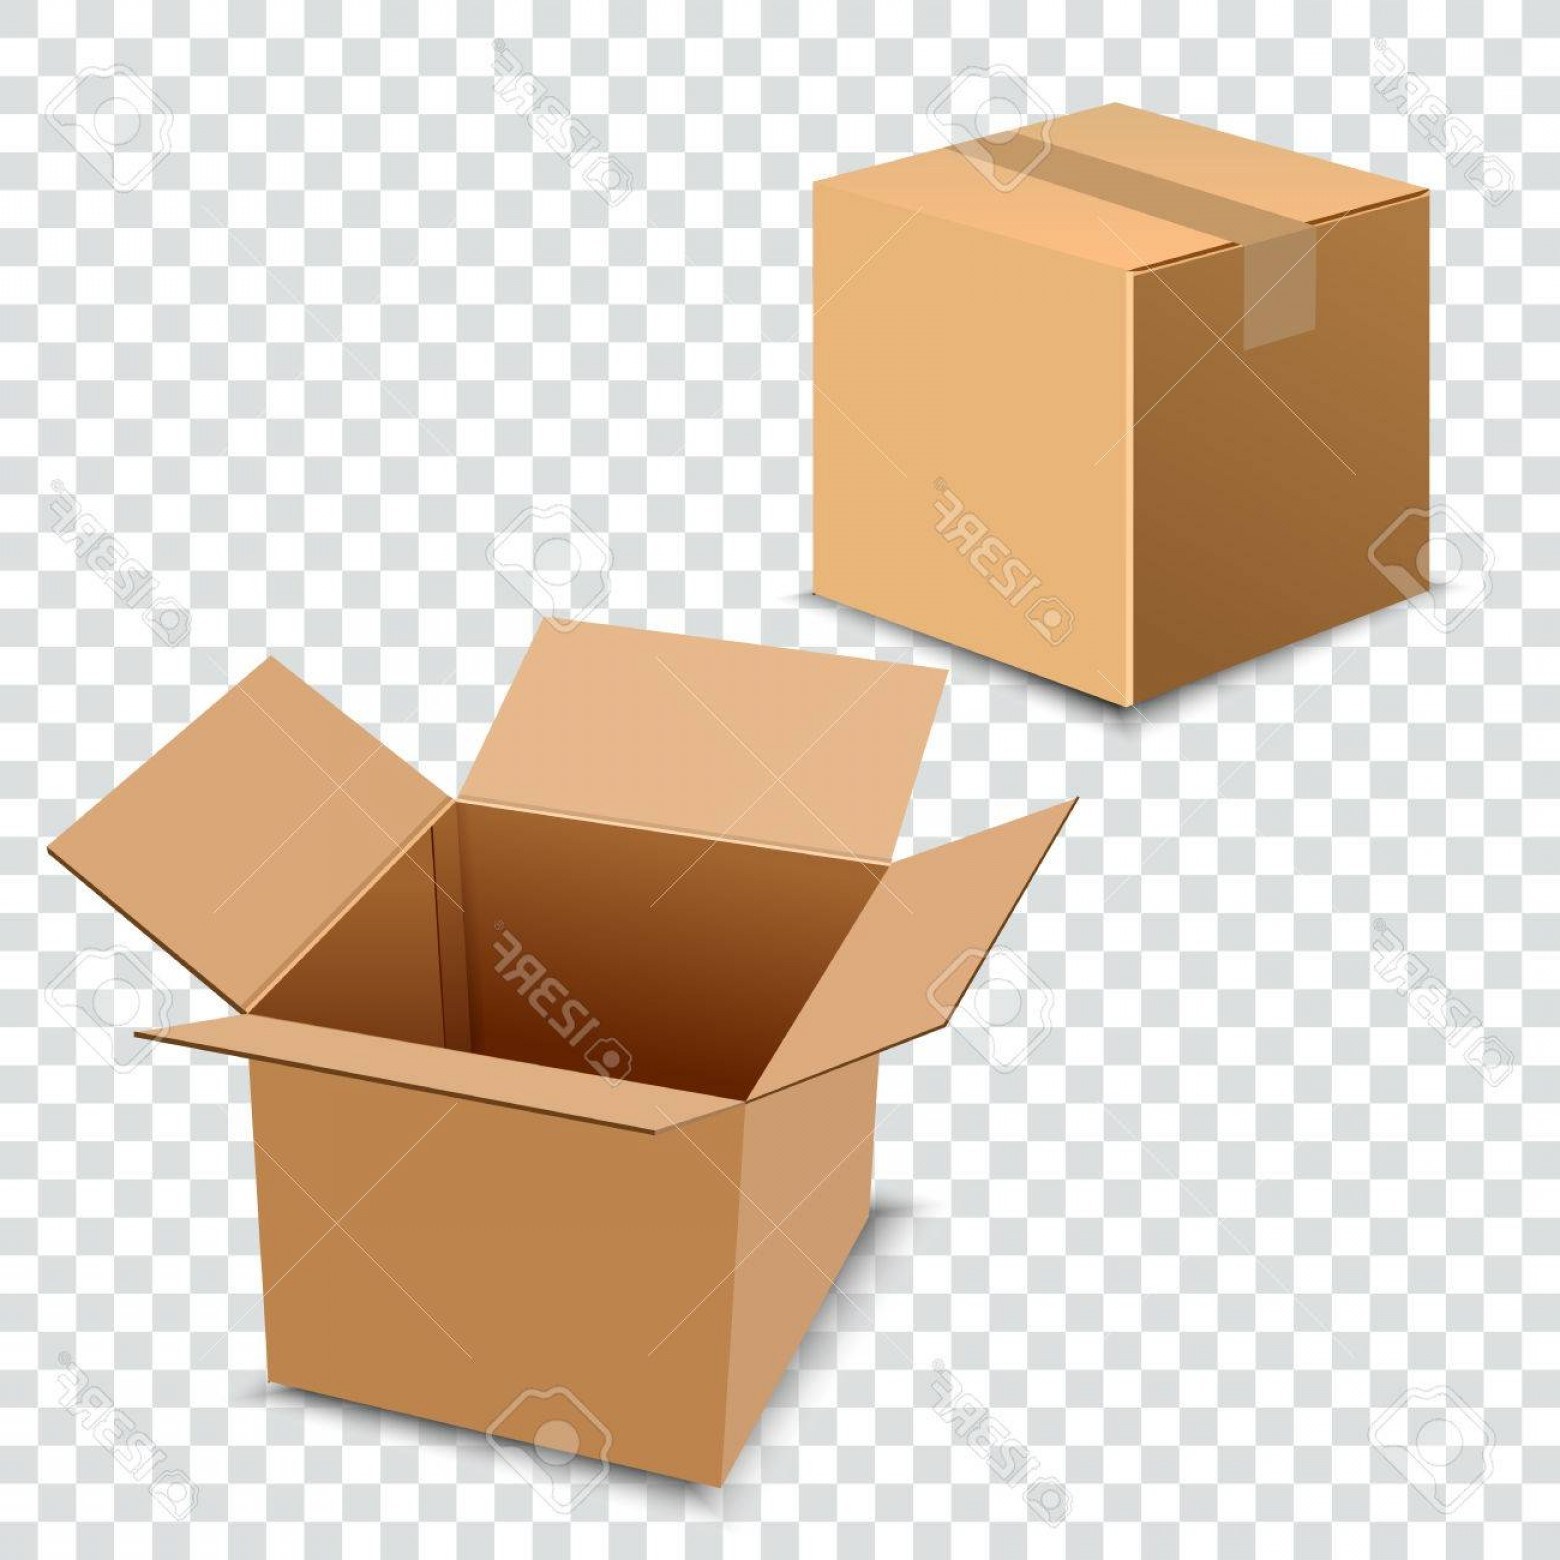 Transparent Brown Vector Background: Photostock Vector Brown Carton Delivery Packaging Box Isolated On Transparent Background Vector Illustration Opened Bo